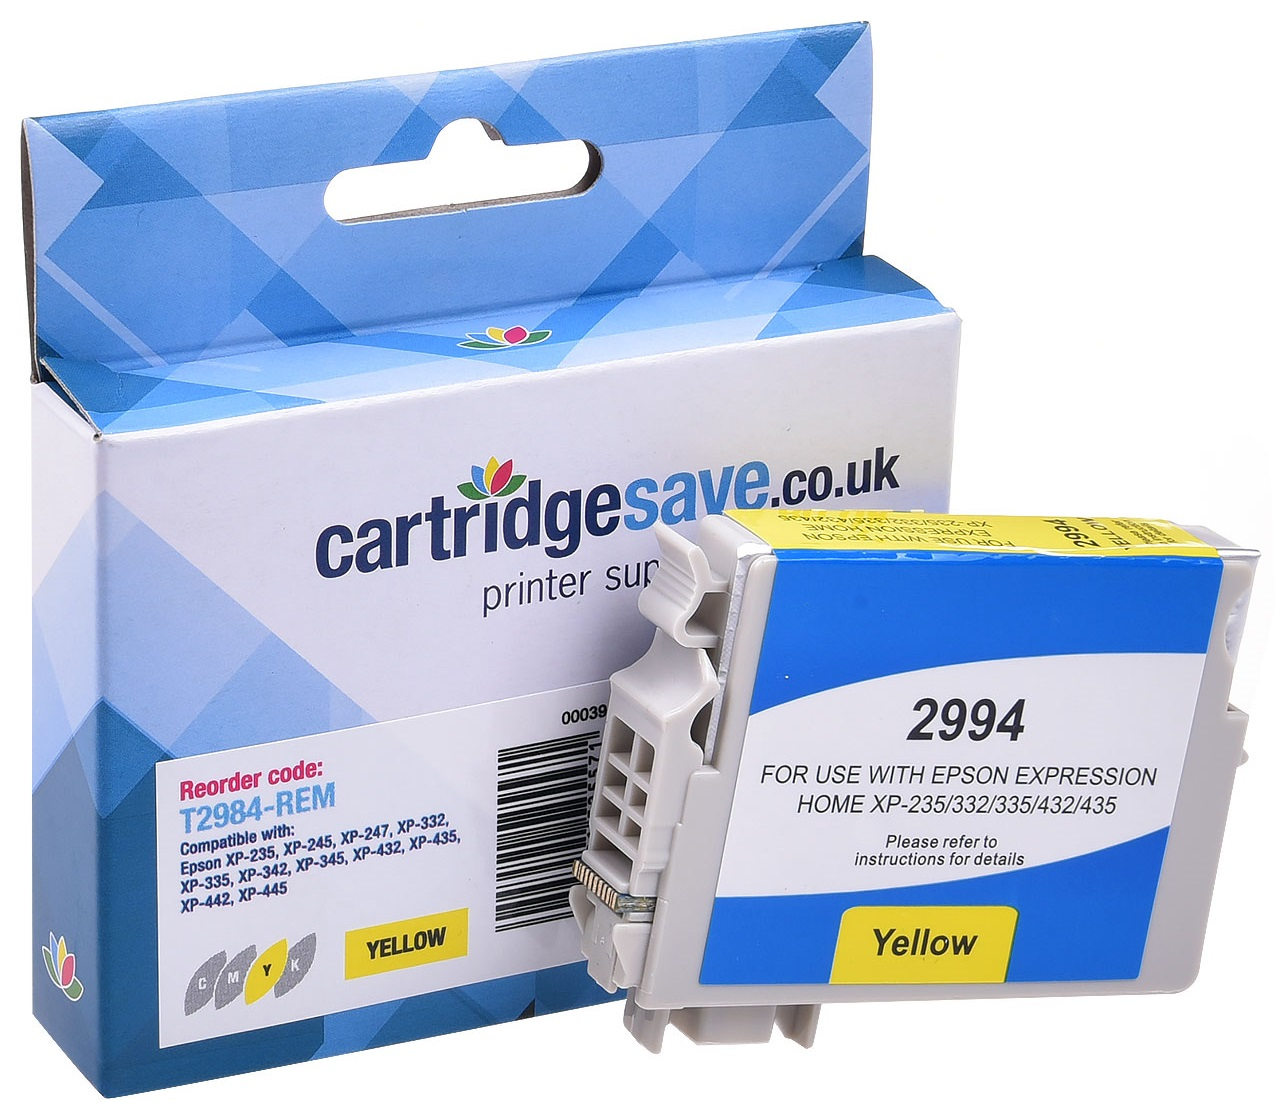 Compatible Yellow Epson 29 Ink Cartridge - (Replaces Epson T2984 Strawberry Inkjet Printer Cartridge)